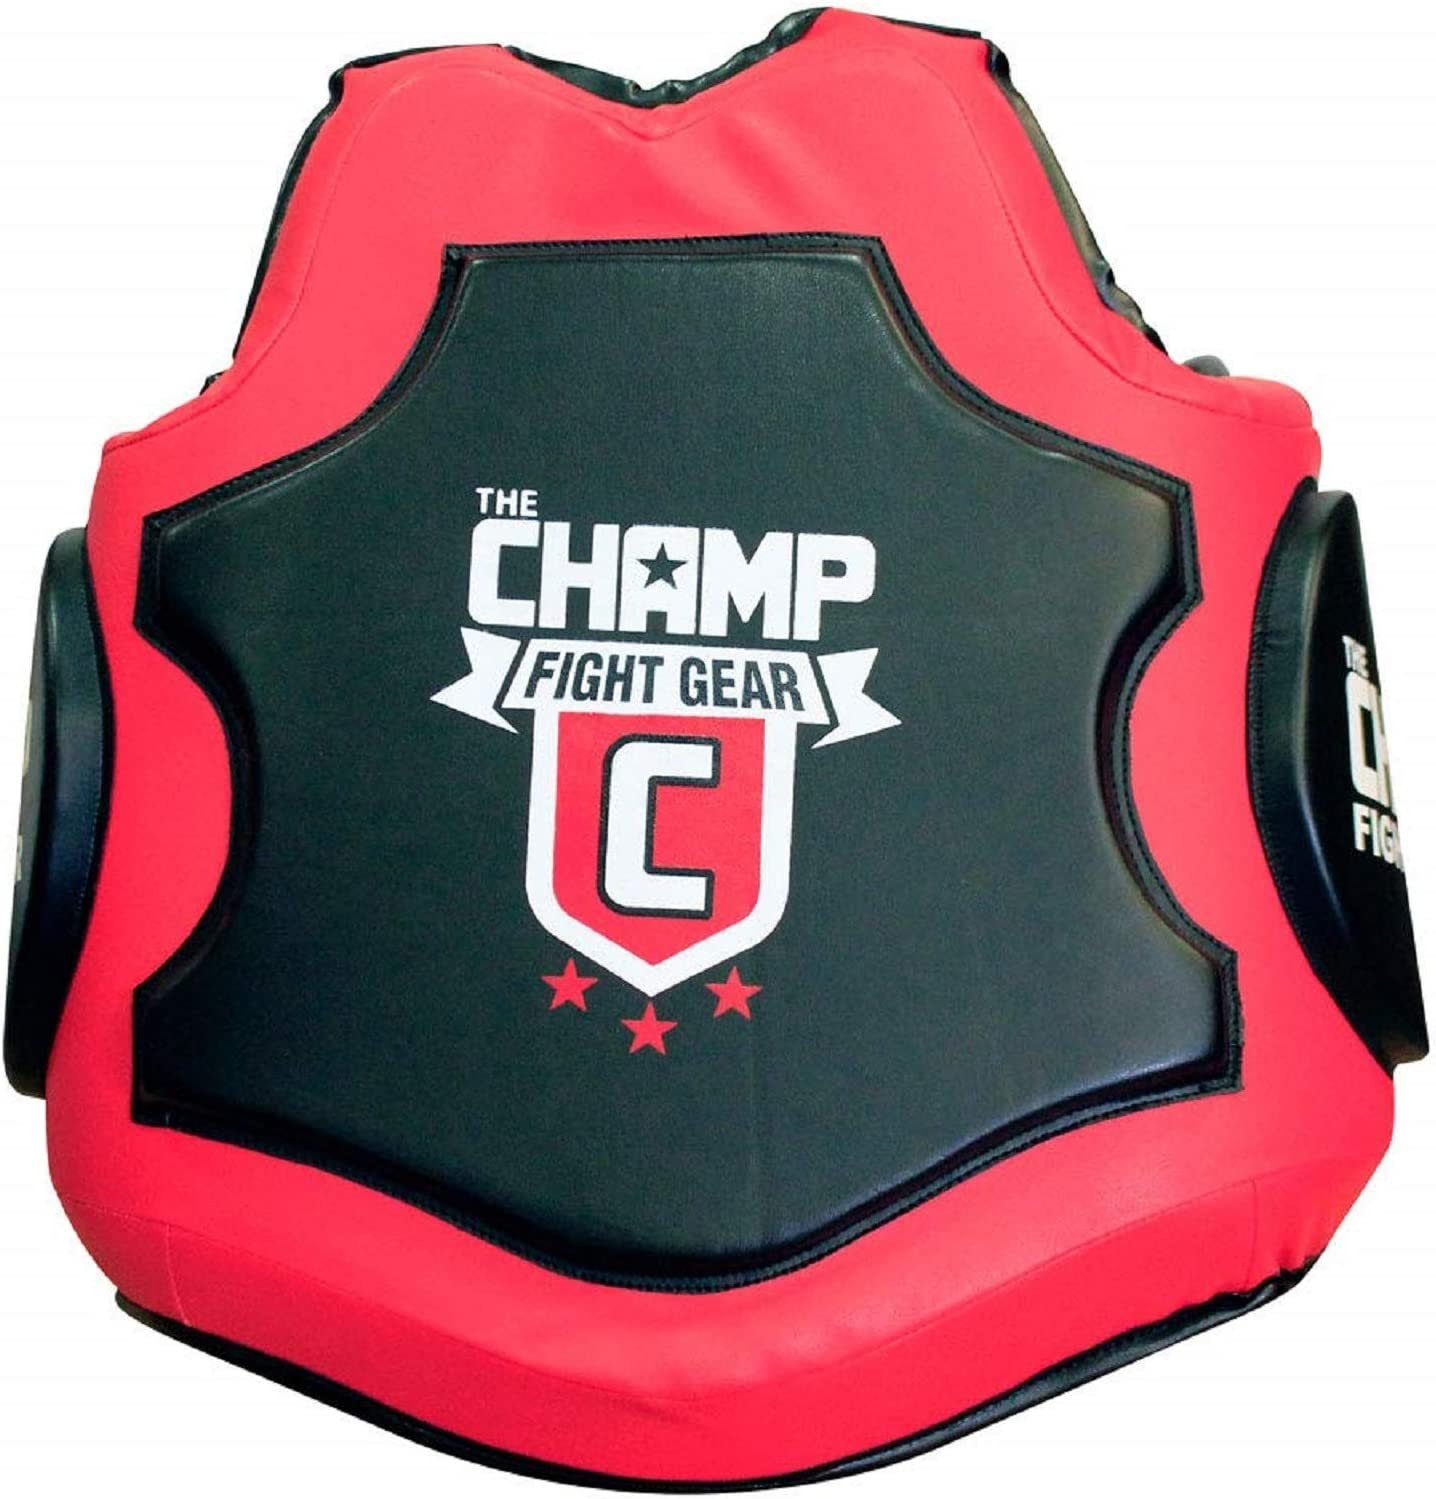 Amber MMA Body Protector Martial Arts Rib Shield Max 76% OFF Black in Red 3 It is very popular